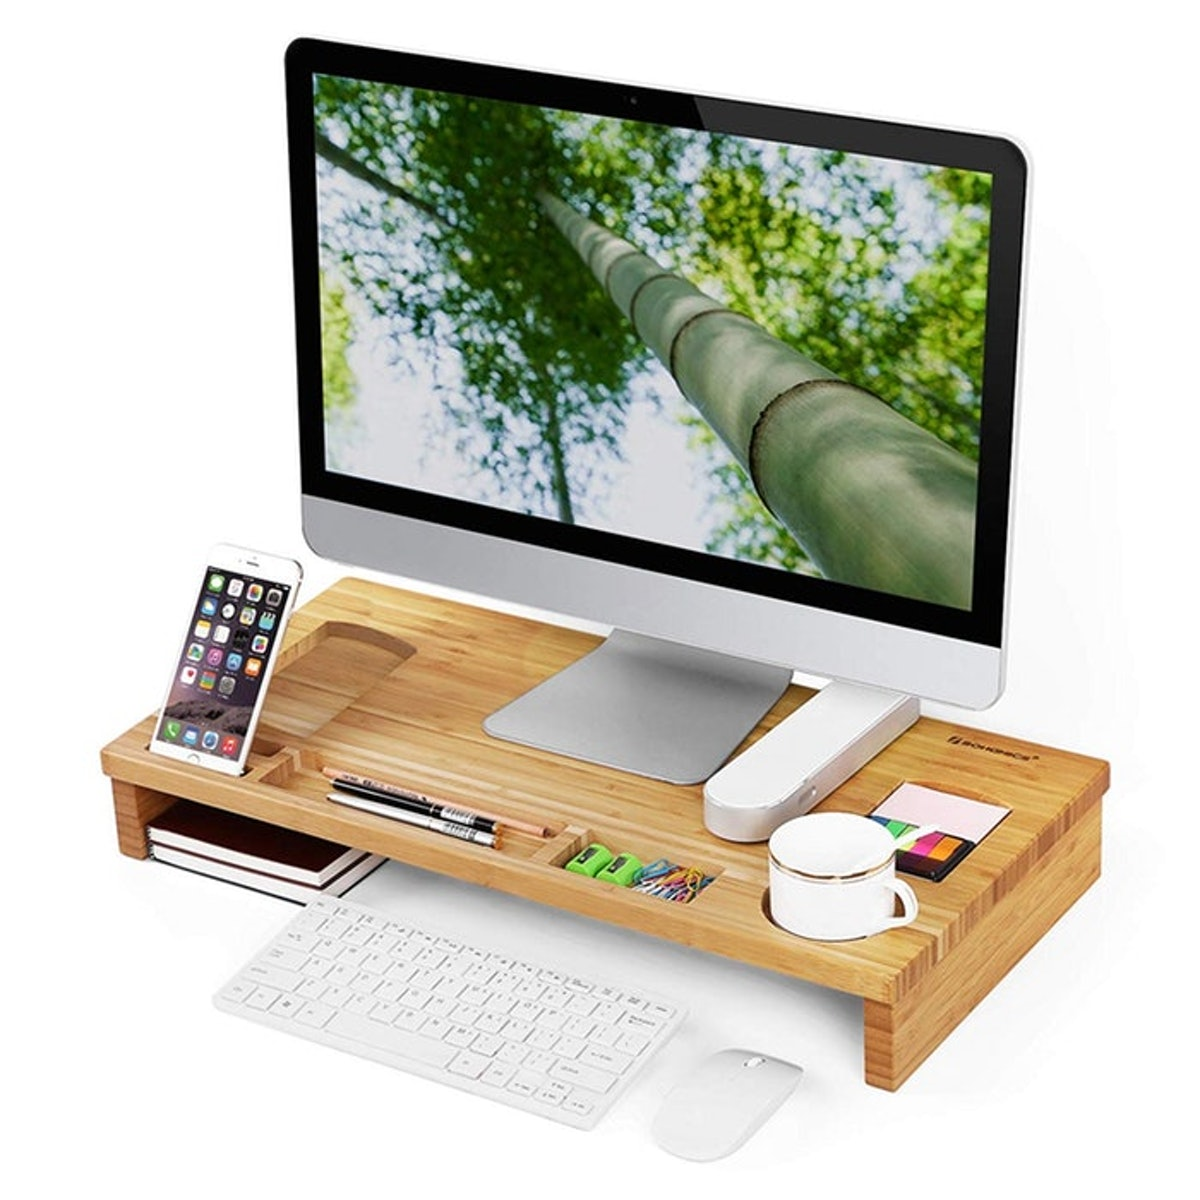 10. An Eco-Friendly Stand That Has Storage